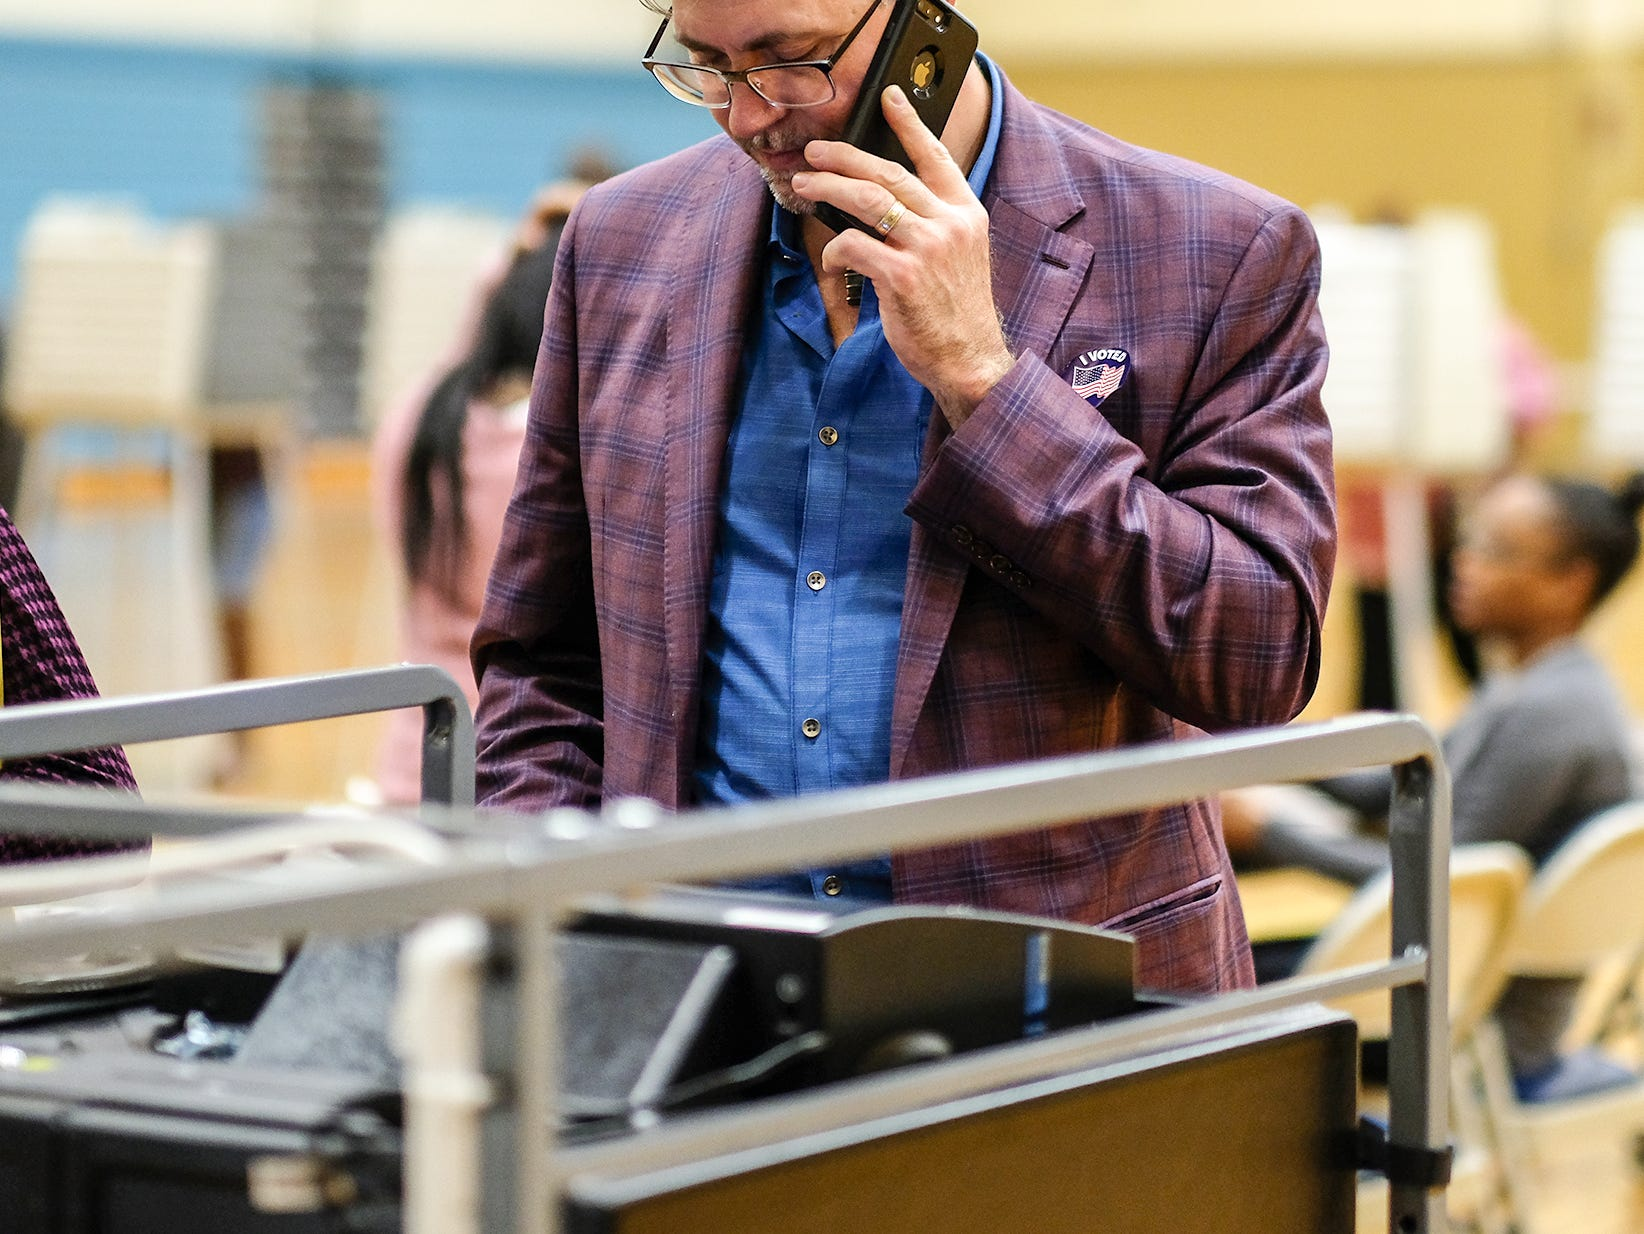 Lansing City Clerk Chris Swope is on the phone as he checks out a tabulator he ended up having to replace at the Alfreda Schmidt Southside Community Center polling station Tuesday, Nov. 6, 2018.